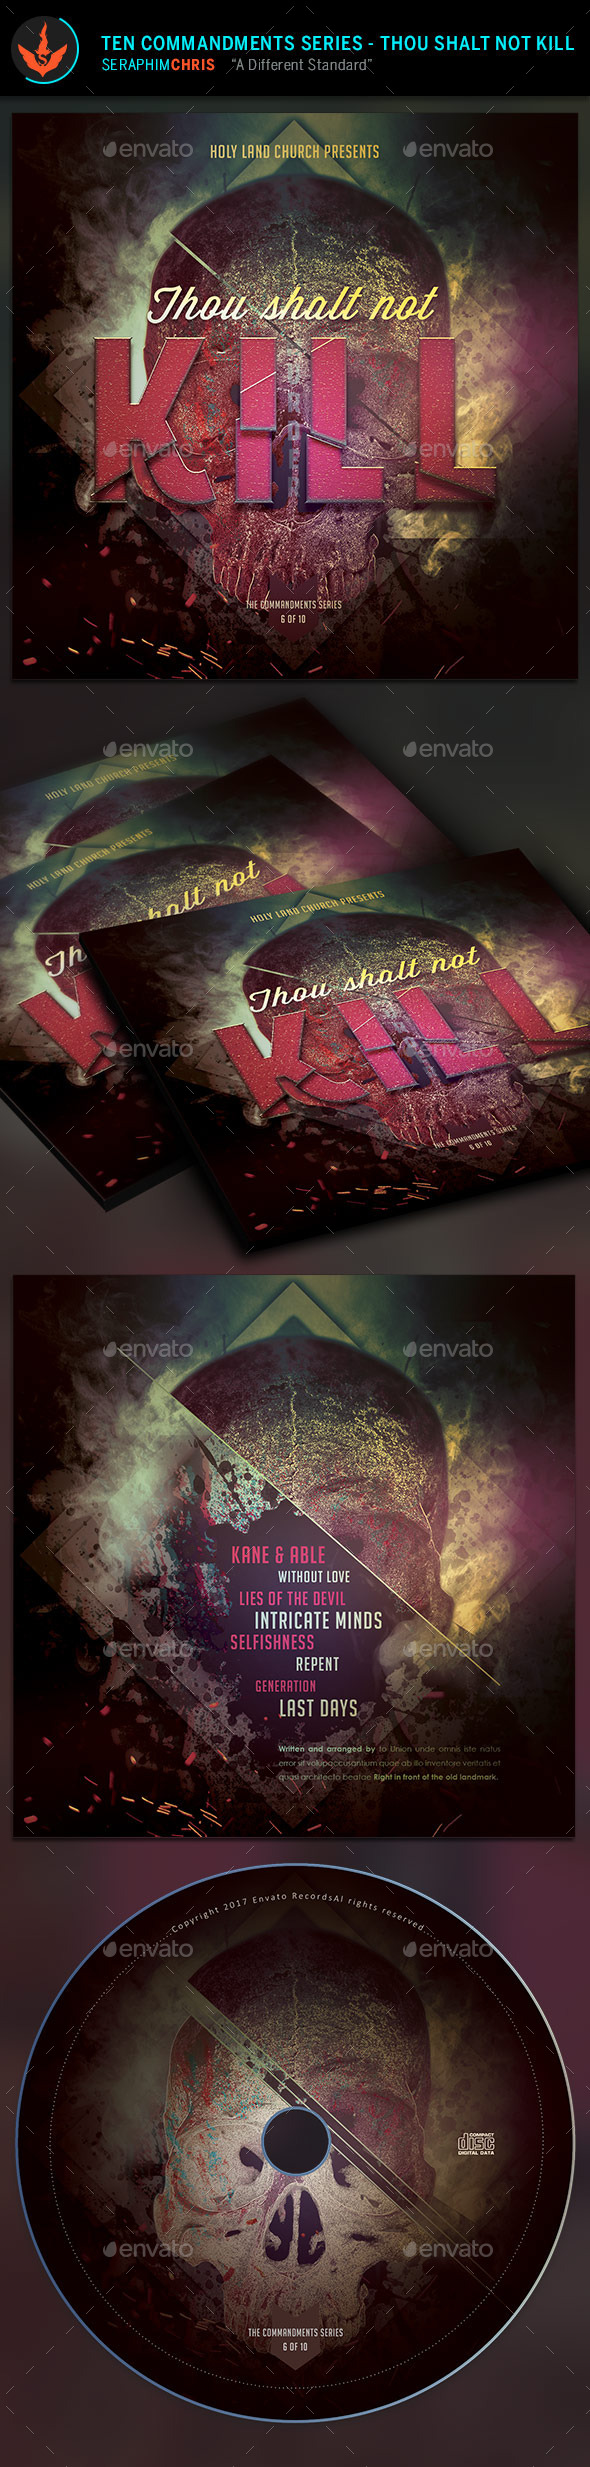 GraphicRiver Thou Shalt Not Kill CD Artwork Template 9723288